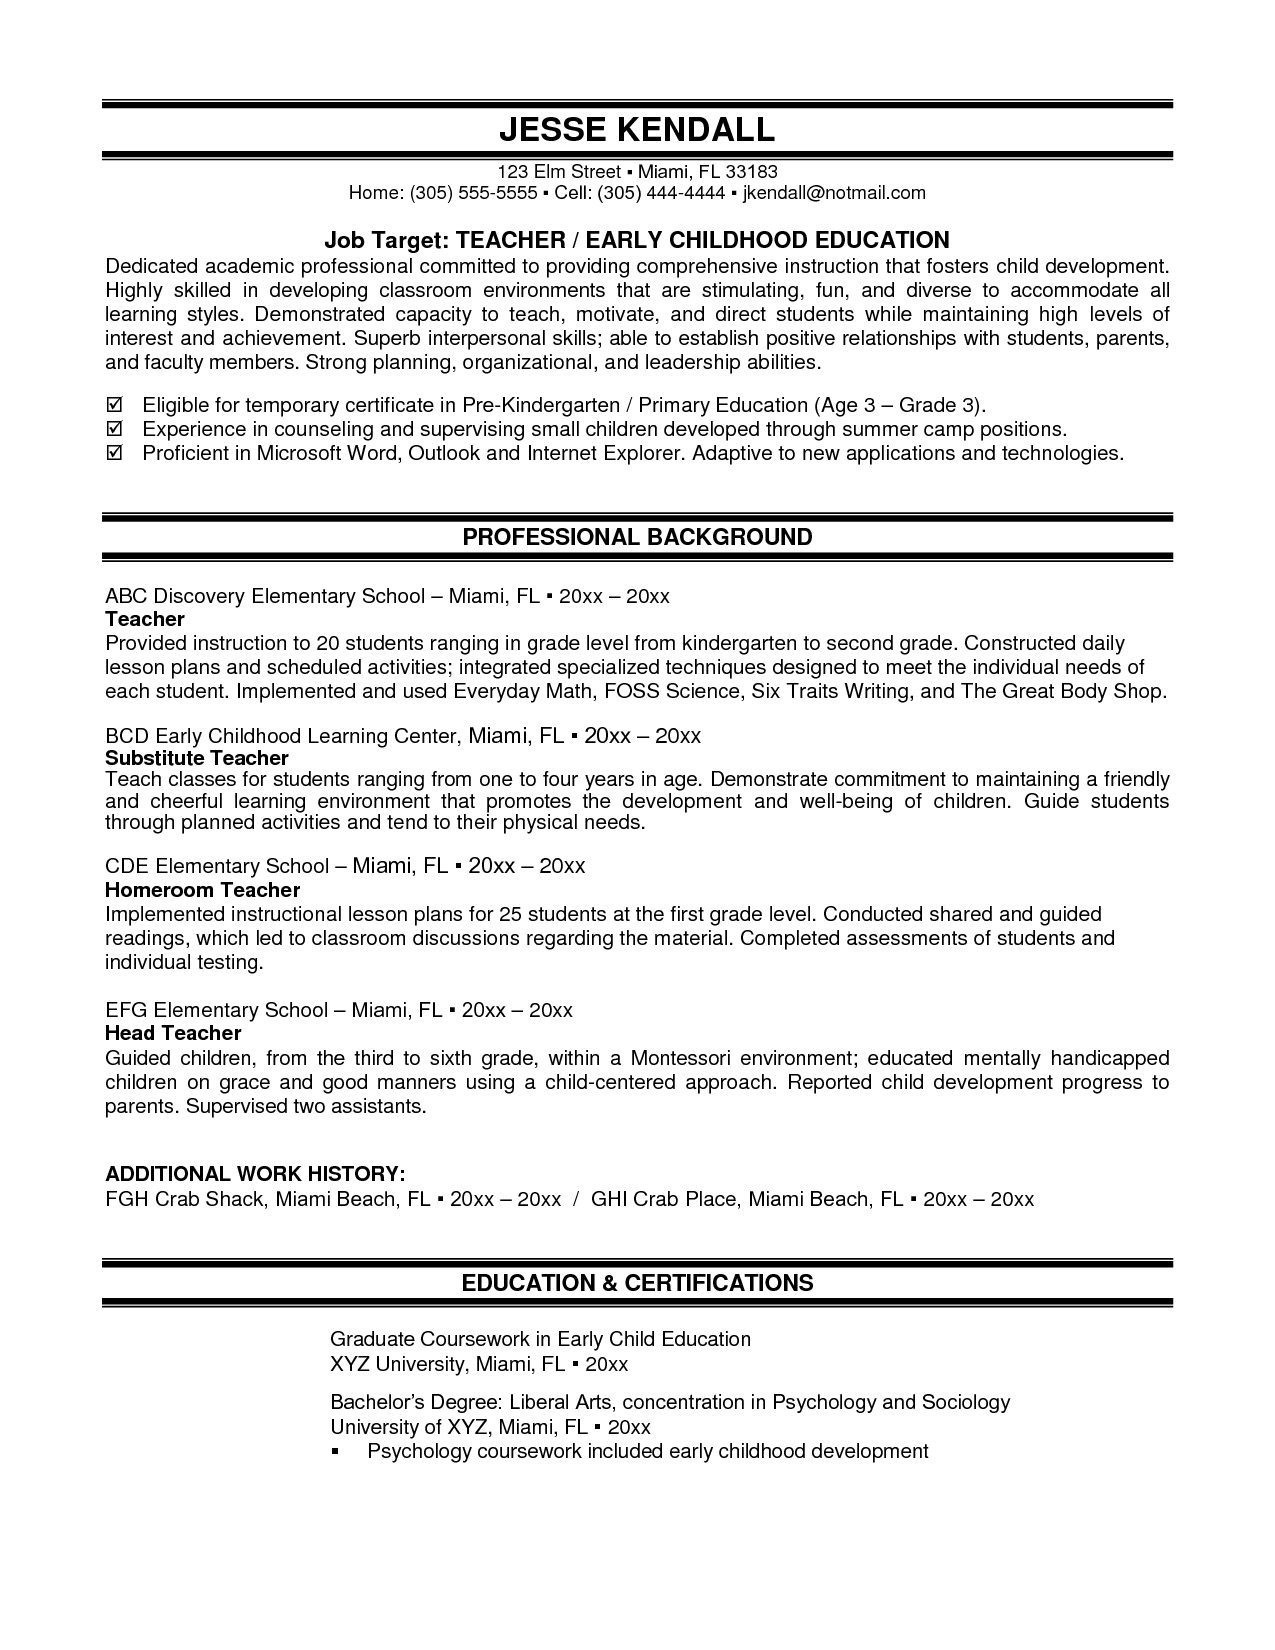 Paraprofessional Resume Template - Special Education Teacher Job Description Resume New Elementary